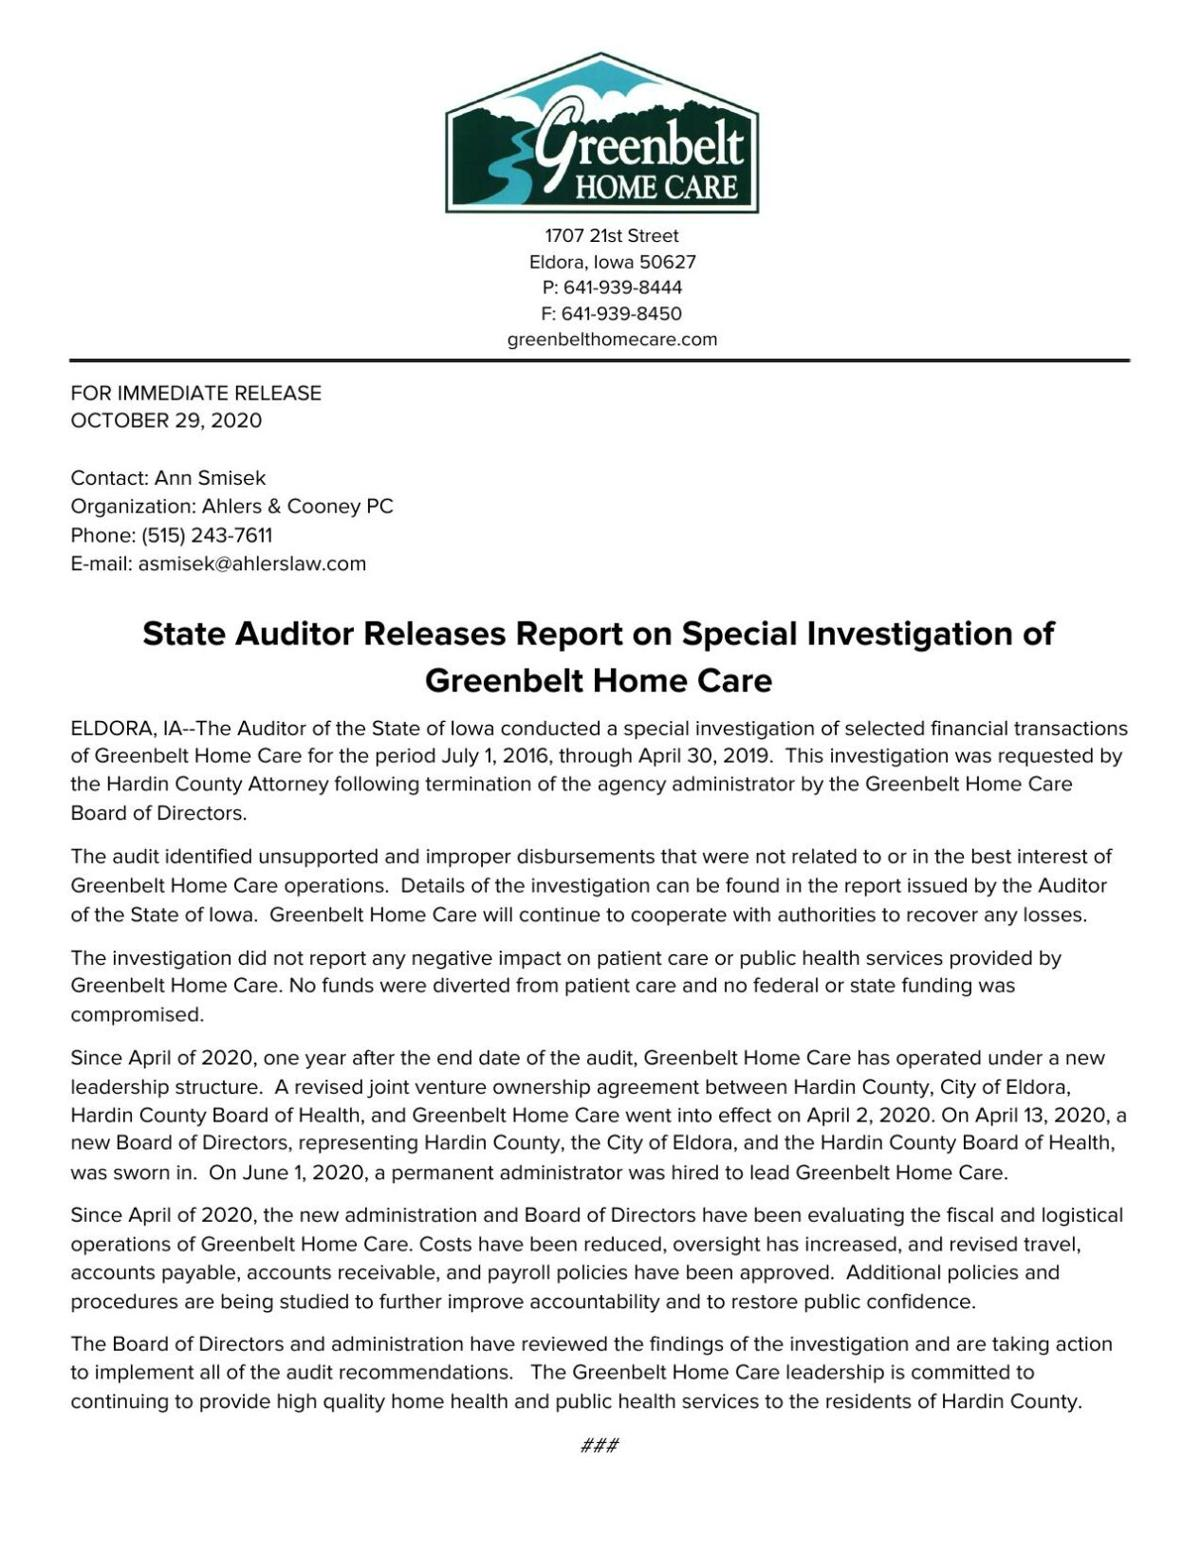 Greenbelt Home Care Audit Press Release